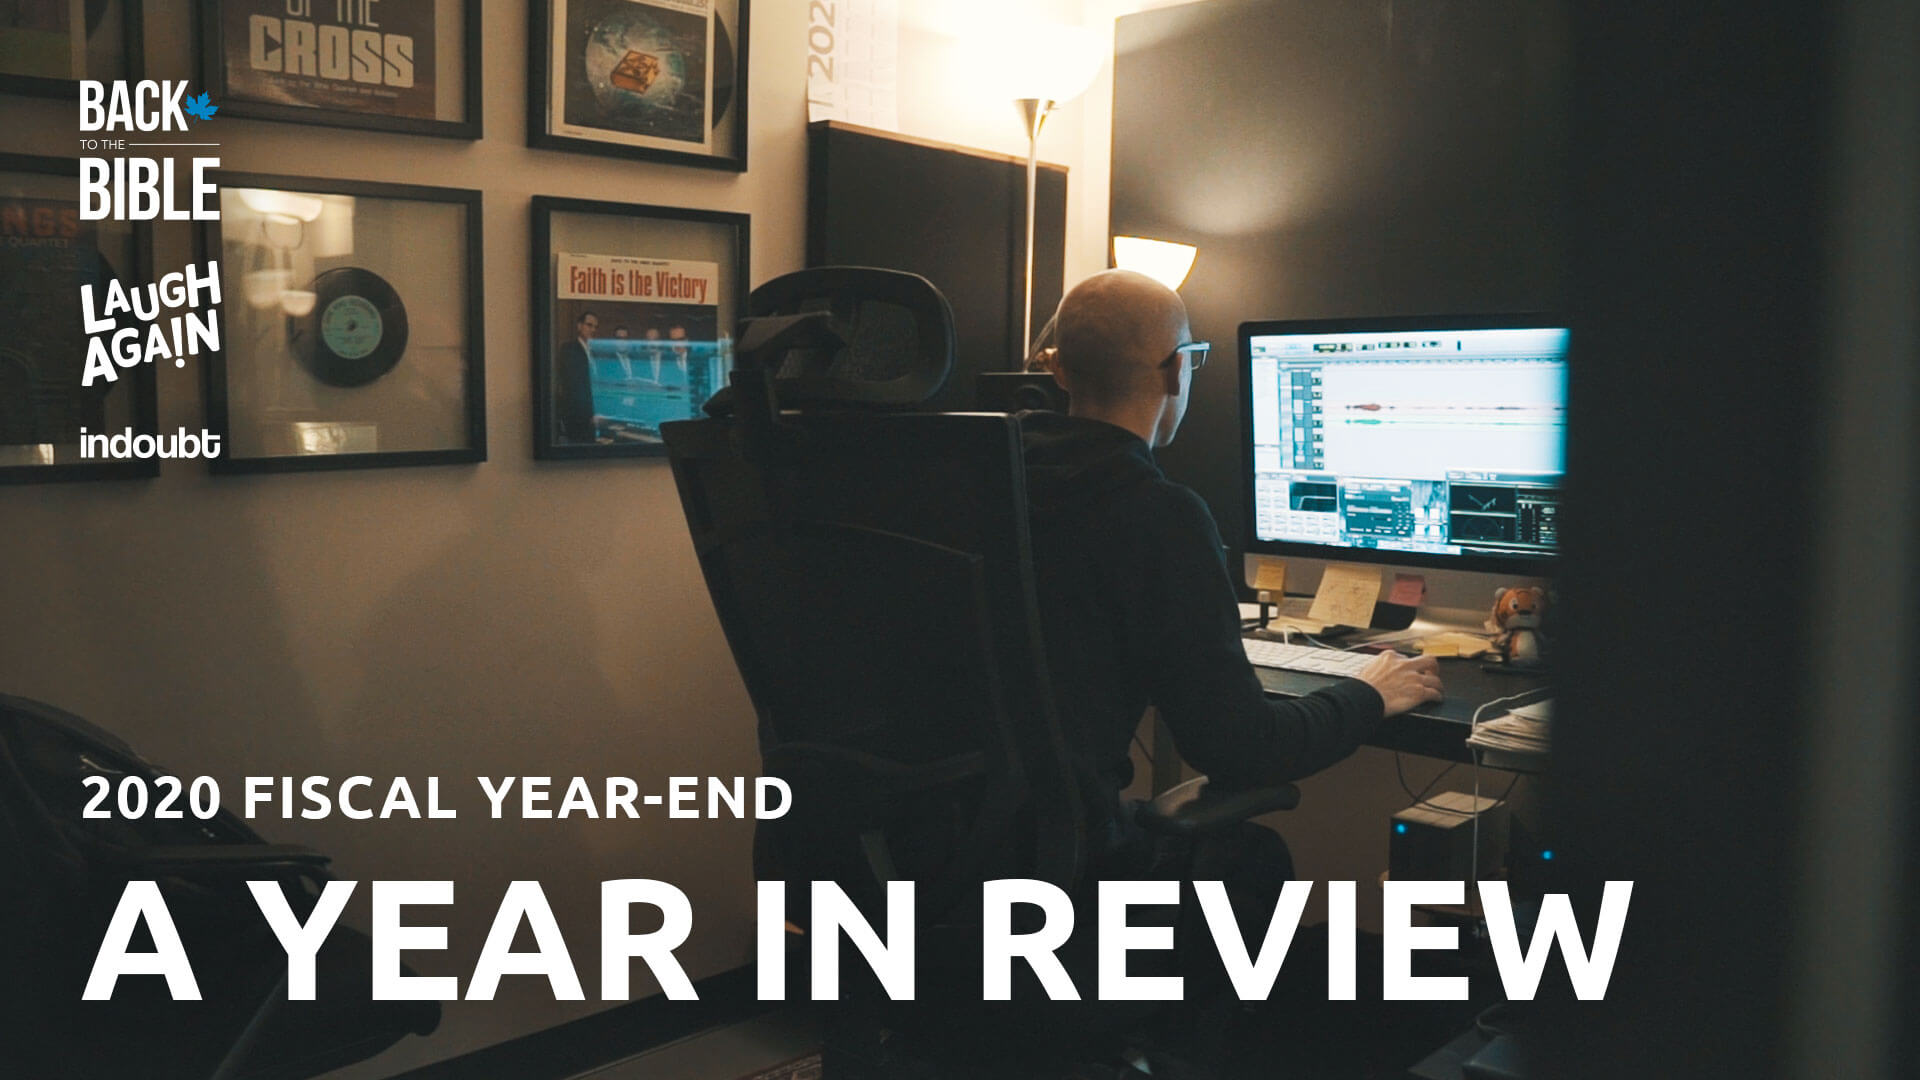 A Year in Review - Fiscal Year-End 2020 | Back to the Bible Canada